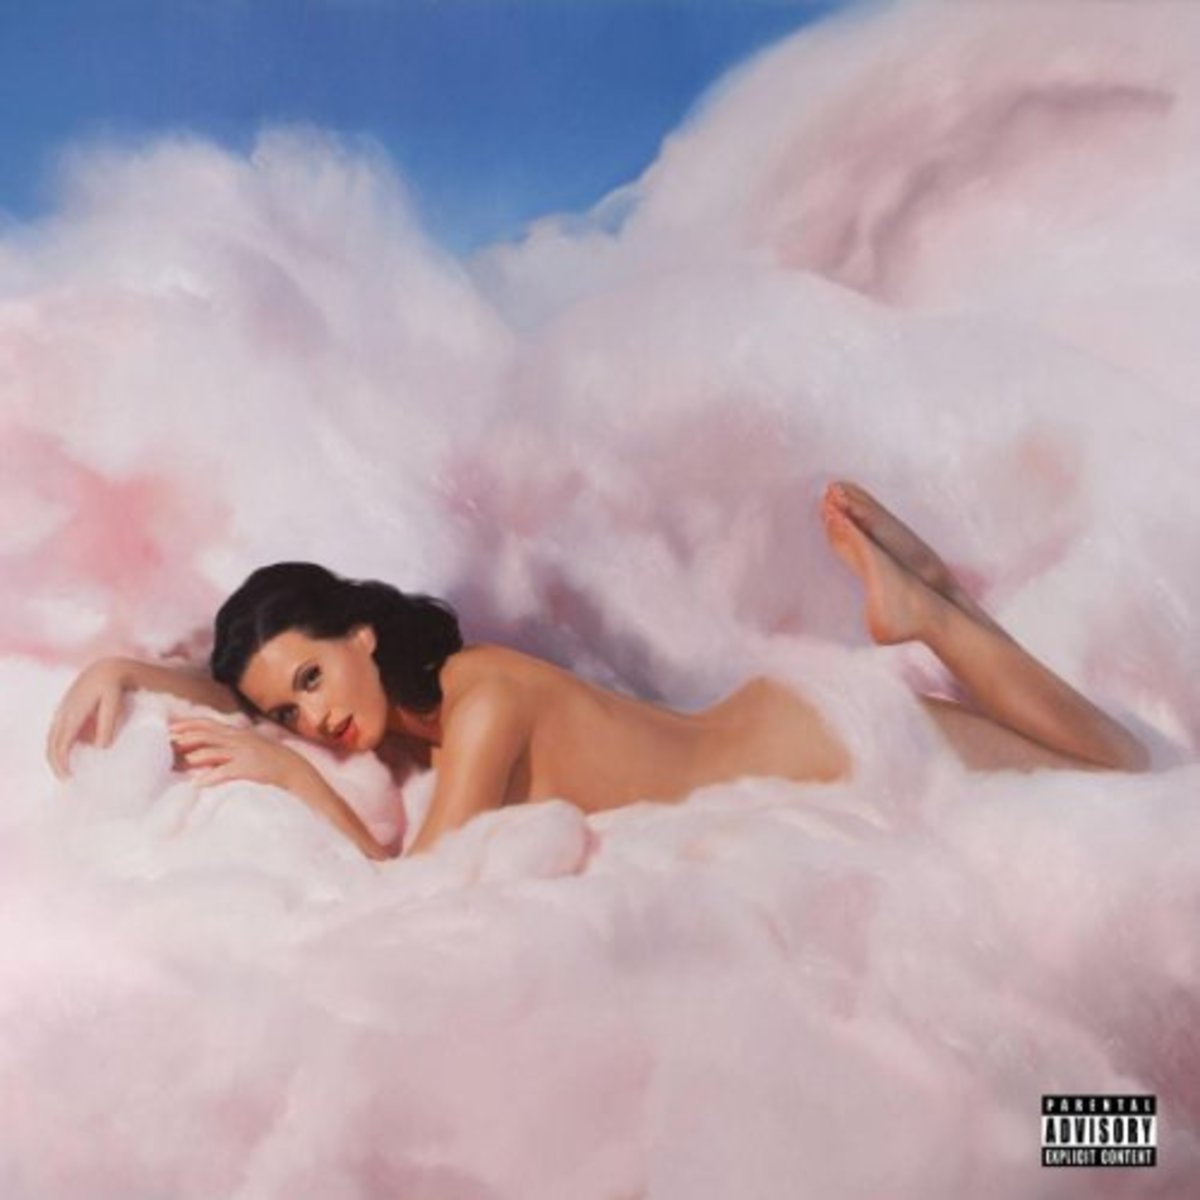 Teenage Dream produced a record 5 number one songs